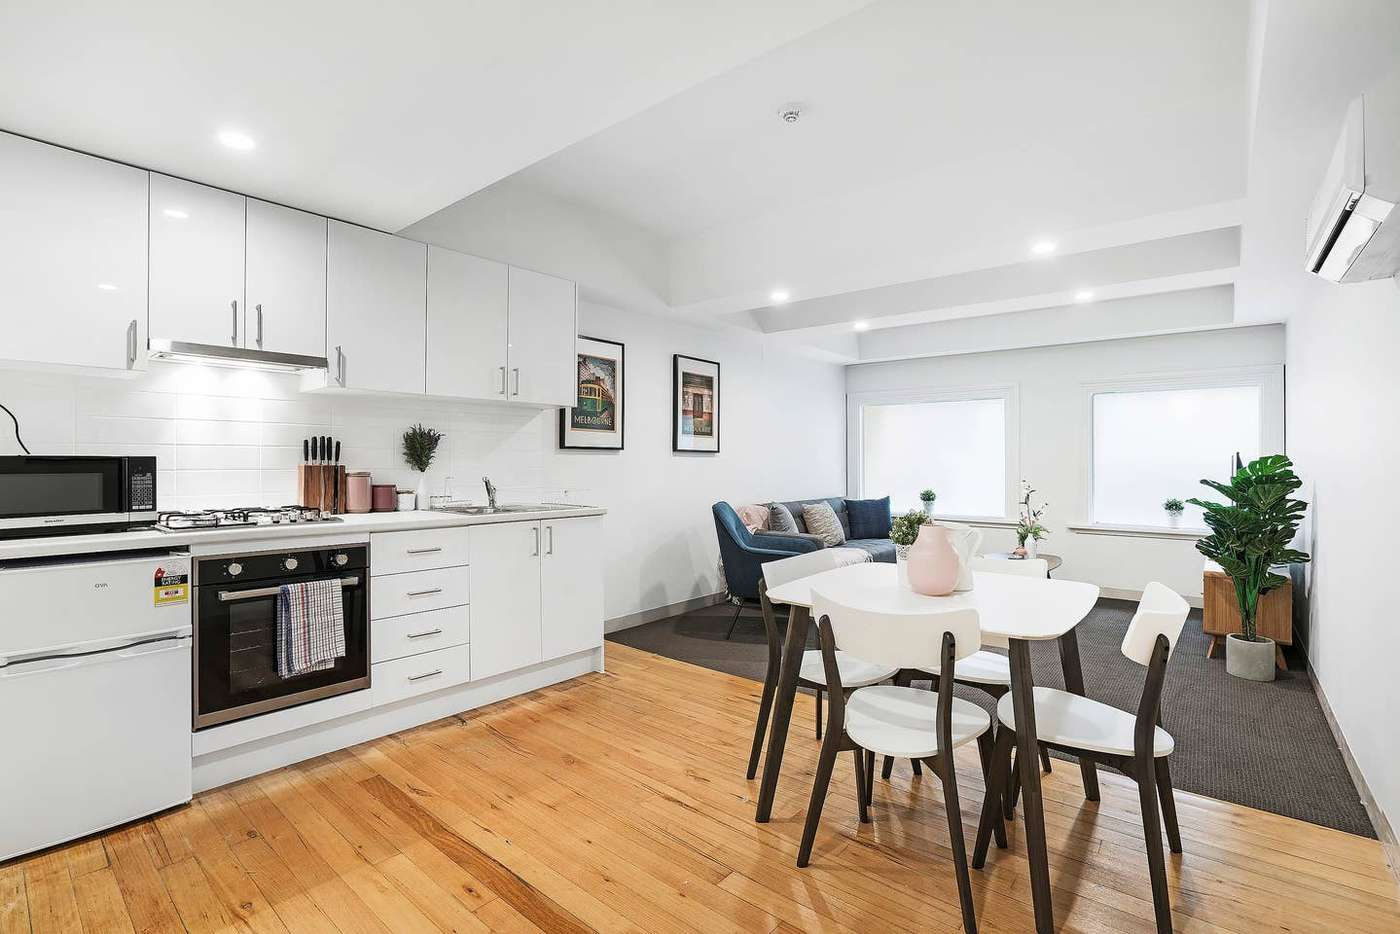 Main view of Homely apartment listing, 107/296 Flinders Street, Melbourne VIC 3000